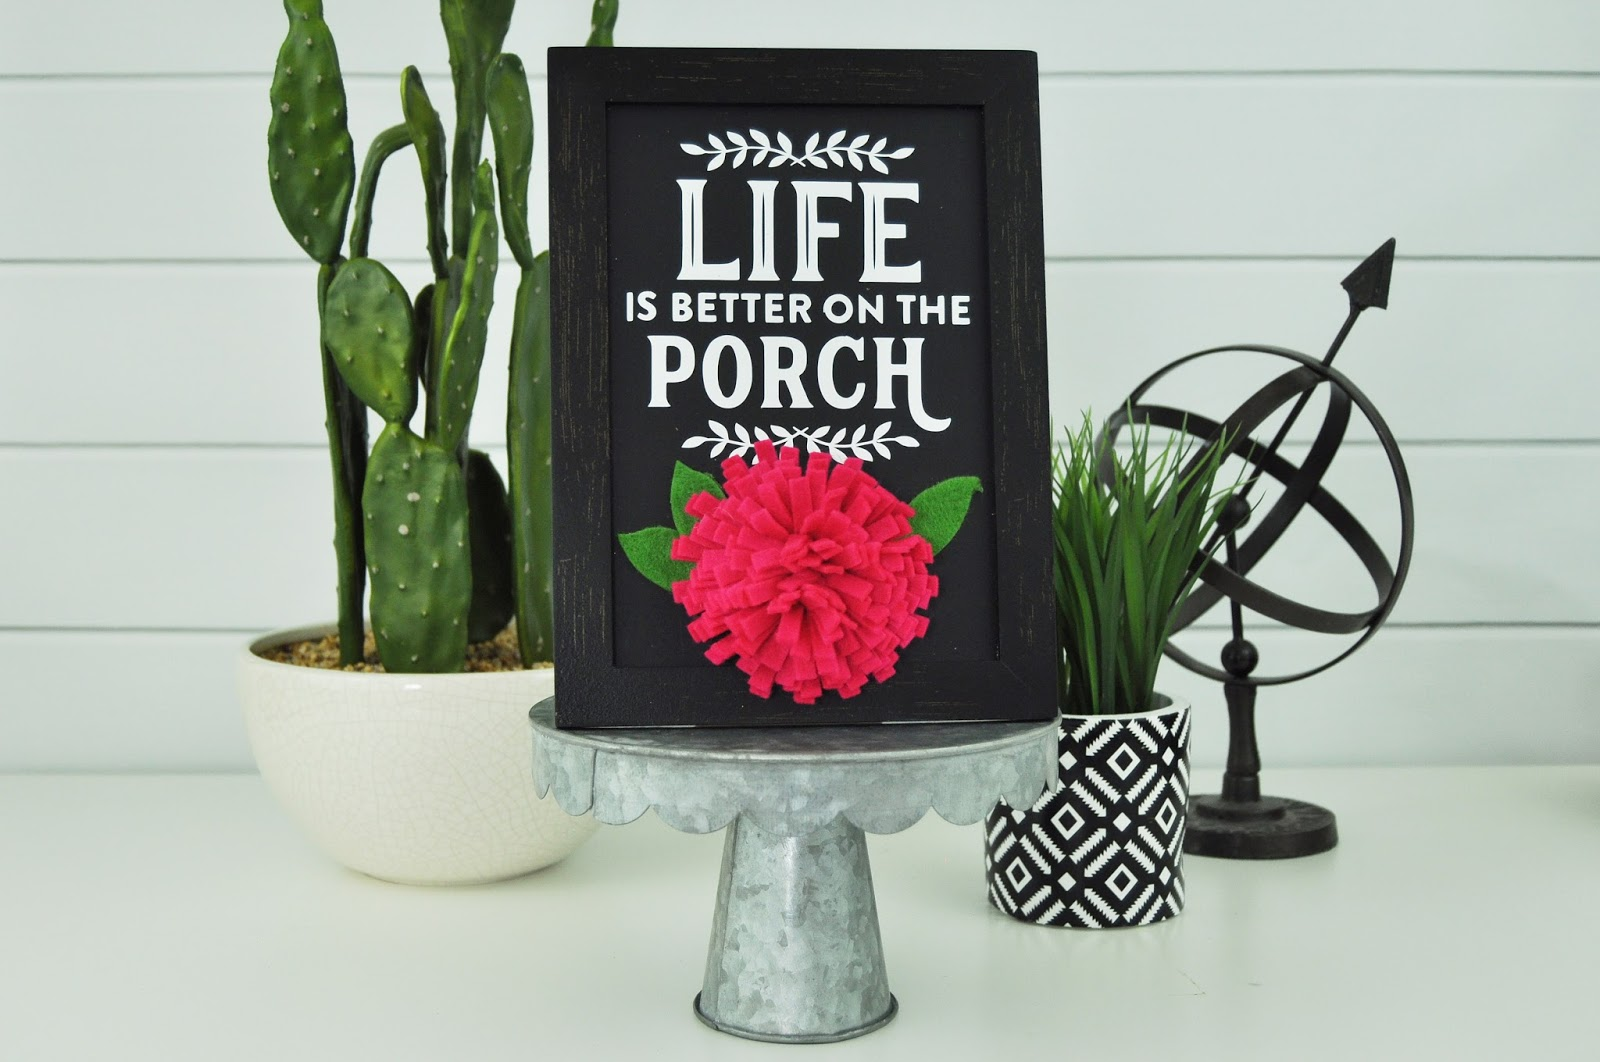 Quick and easy wood crafts including this porch sign for your summer decor.